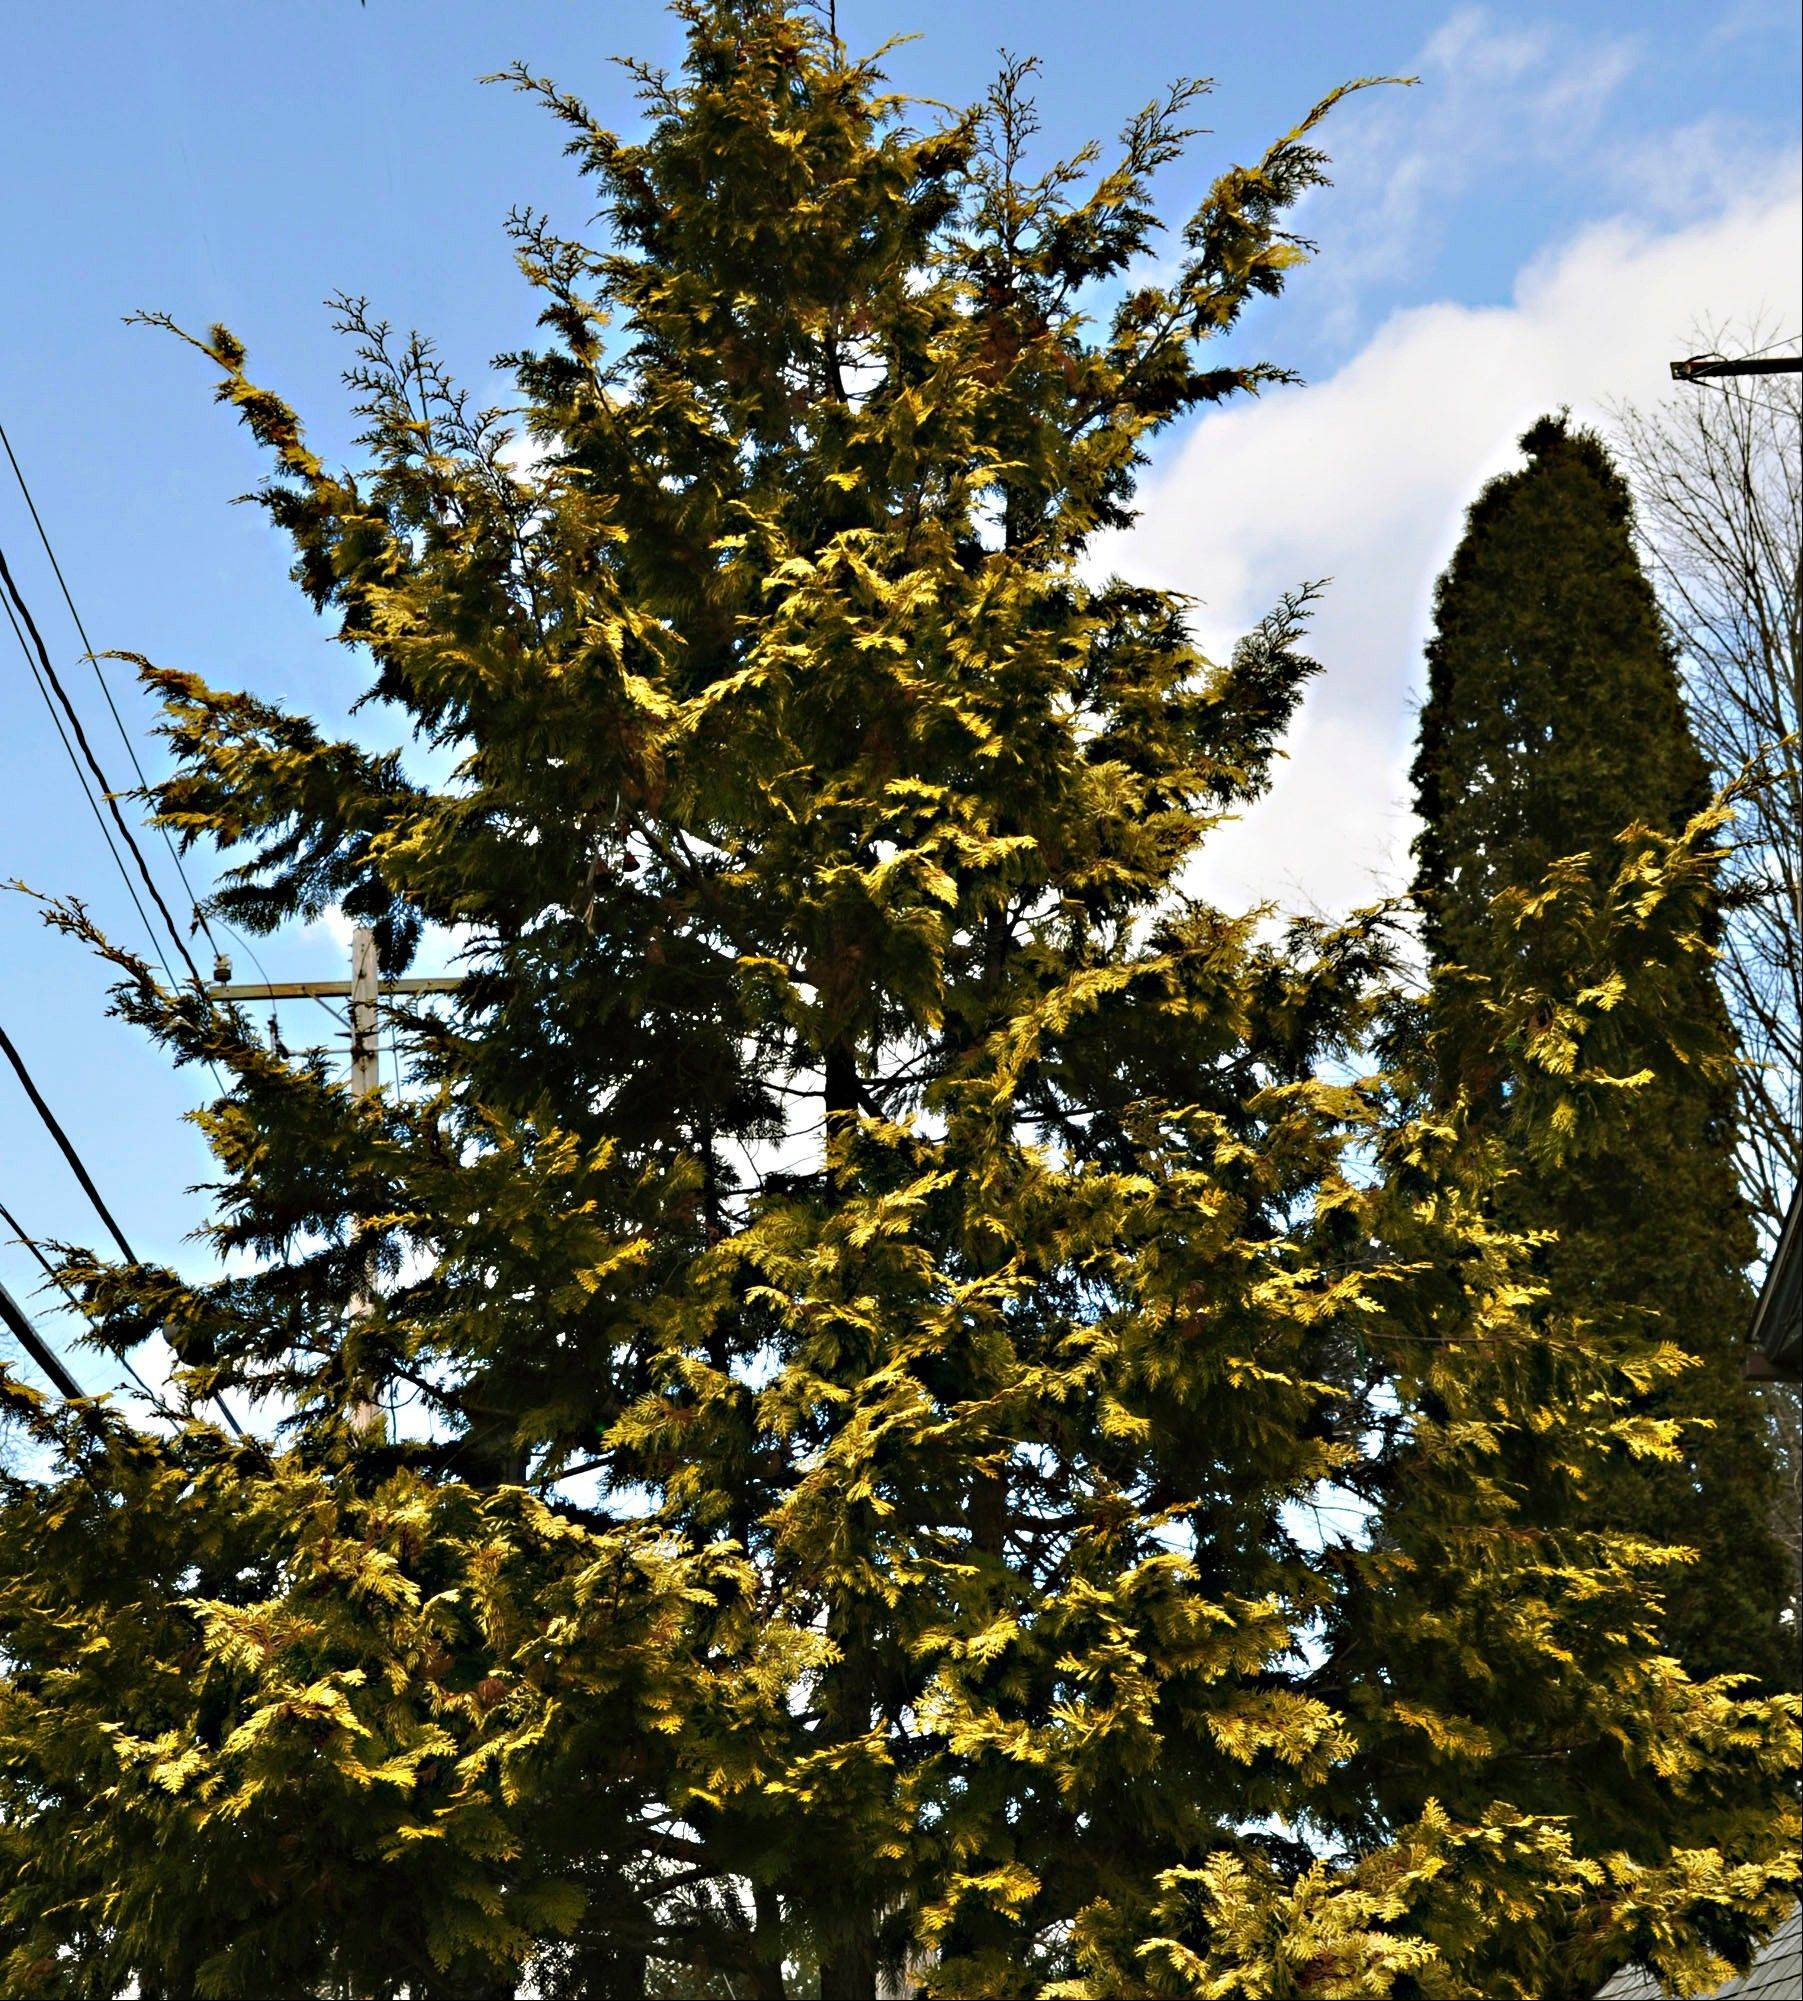 Some varieties of arborvitae, yew and juniper sport yellow foliage, and also have relatively dense, small needles, so the trees look full even when viewed up close, propped by the fireplace.